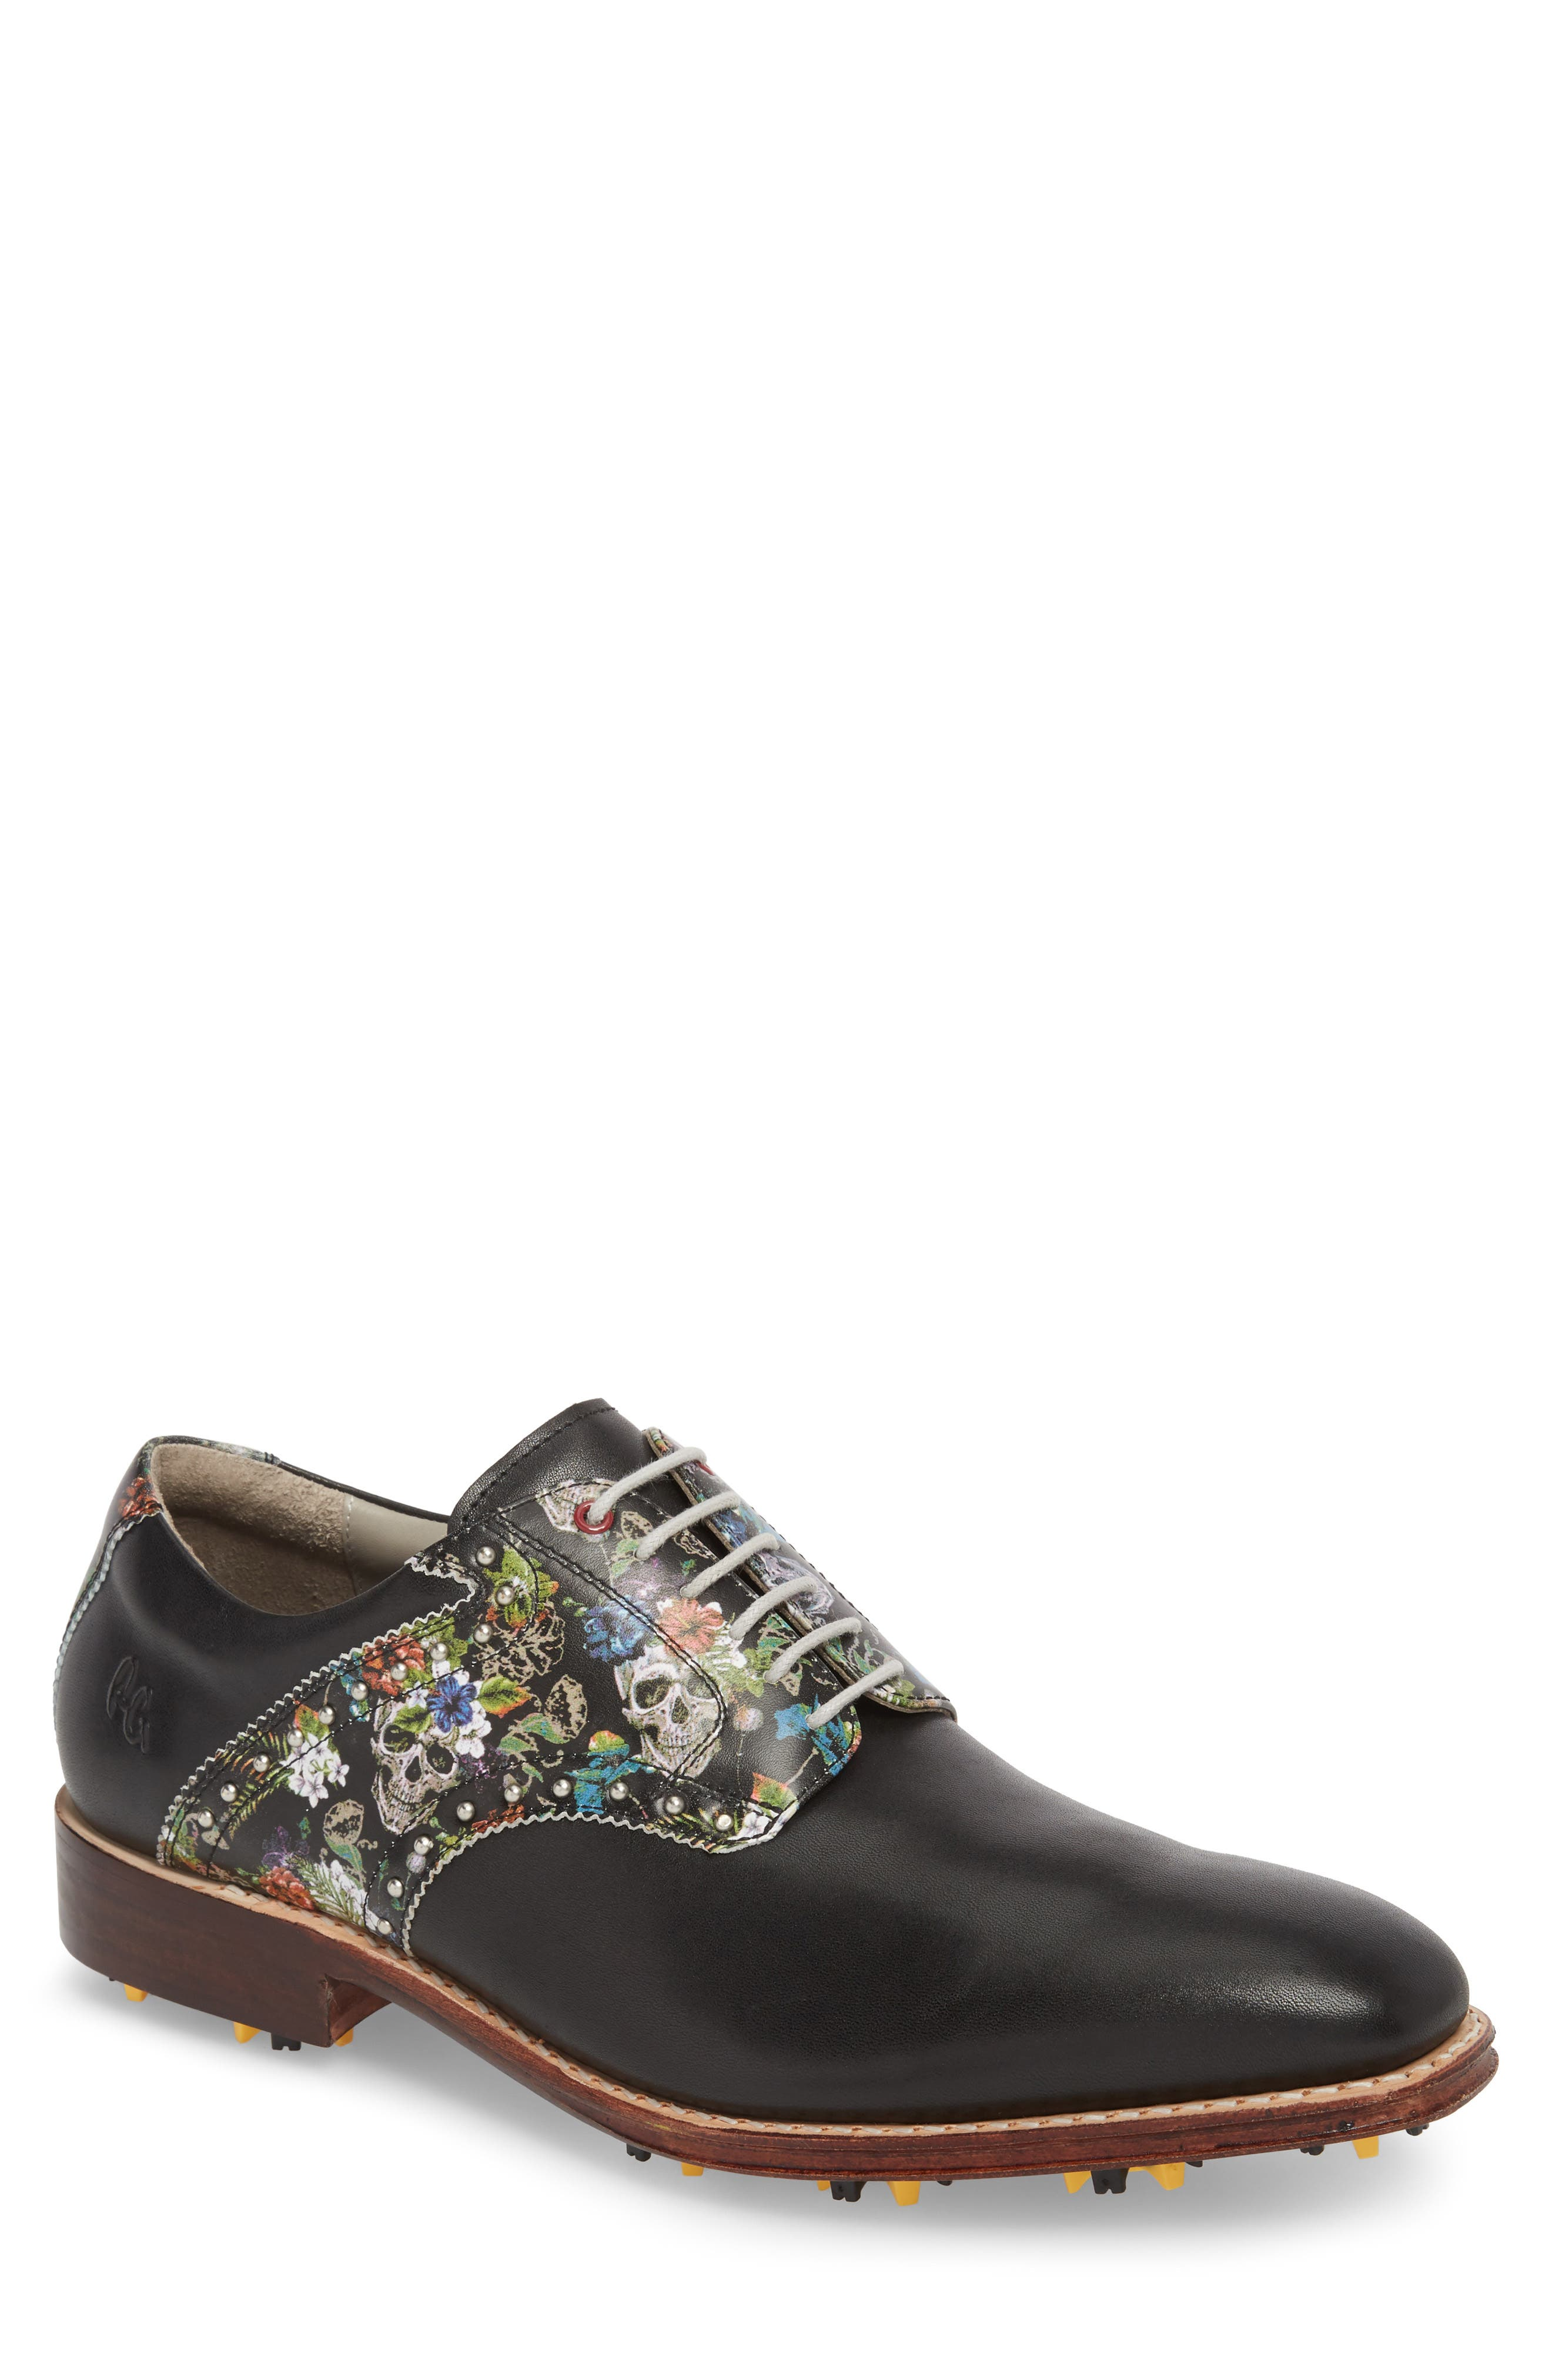 LEGEND WINGTIP OXFORD WITH REMOVABLE CLEATS